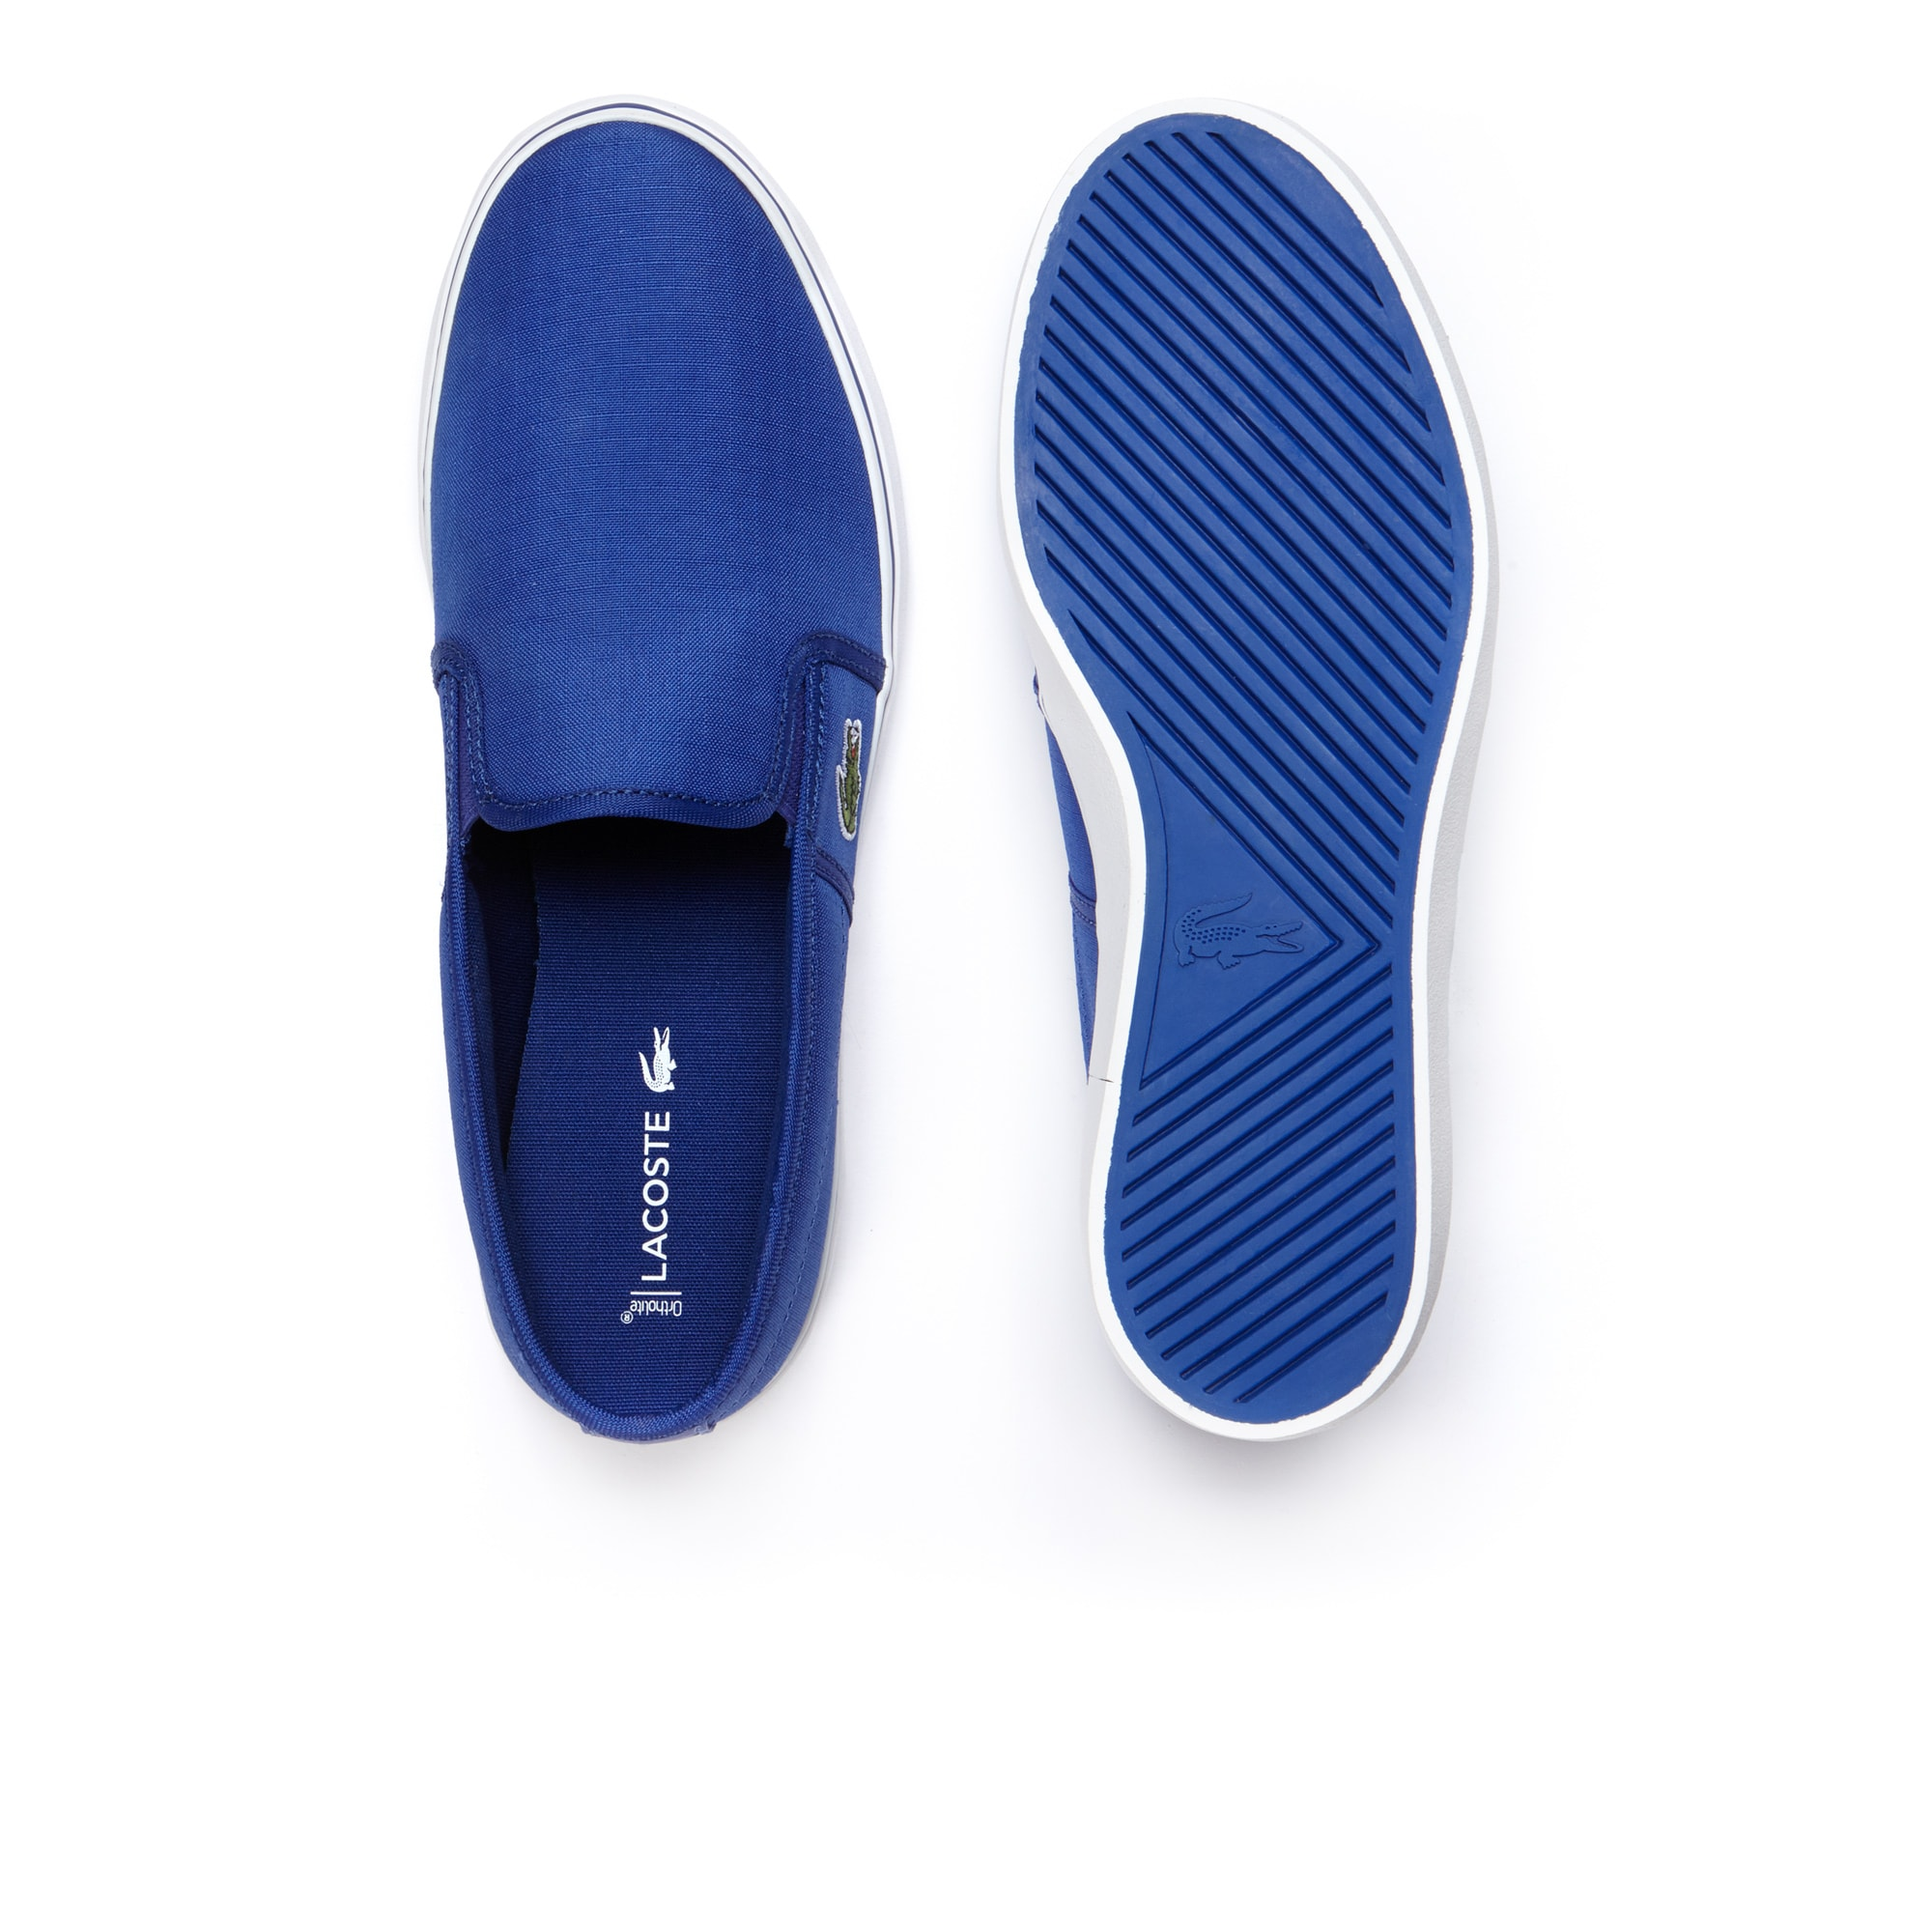 Damen-Slipper aus Ripstop-Canvas GAZON